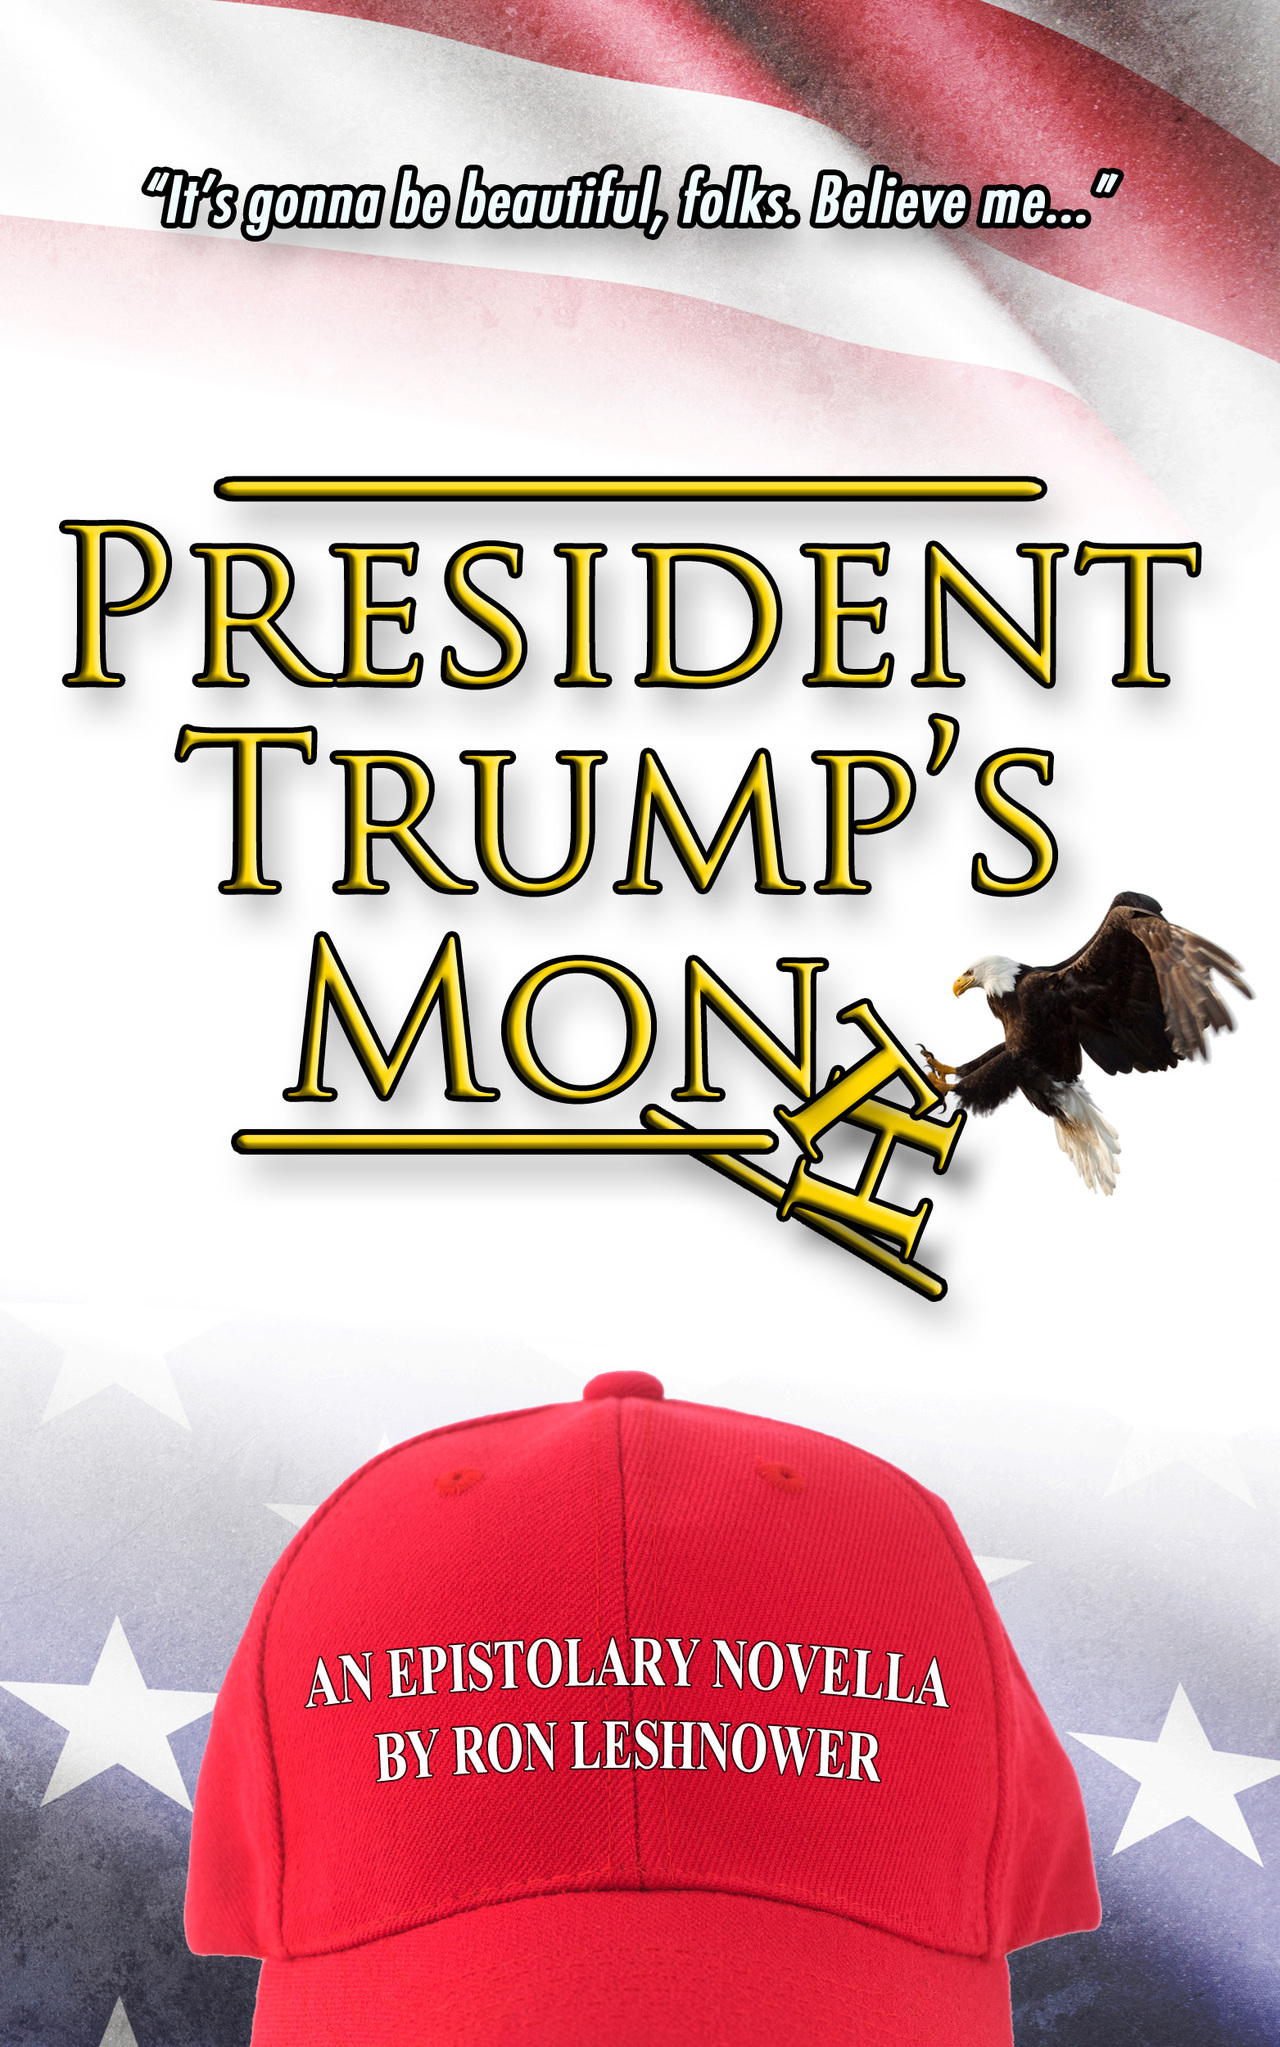 Presidenttrumpsmonth front cover